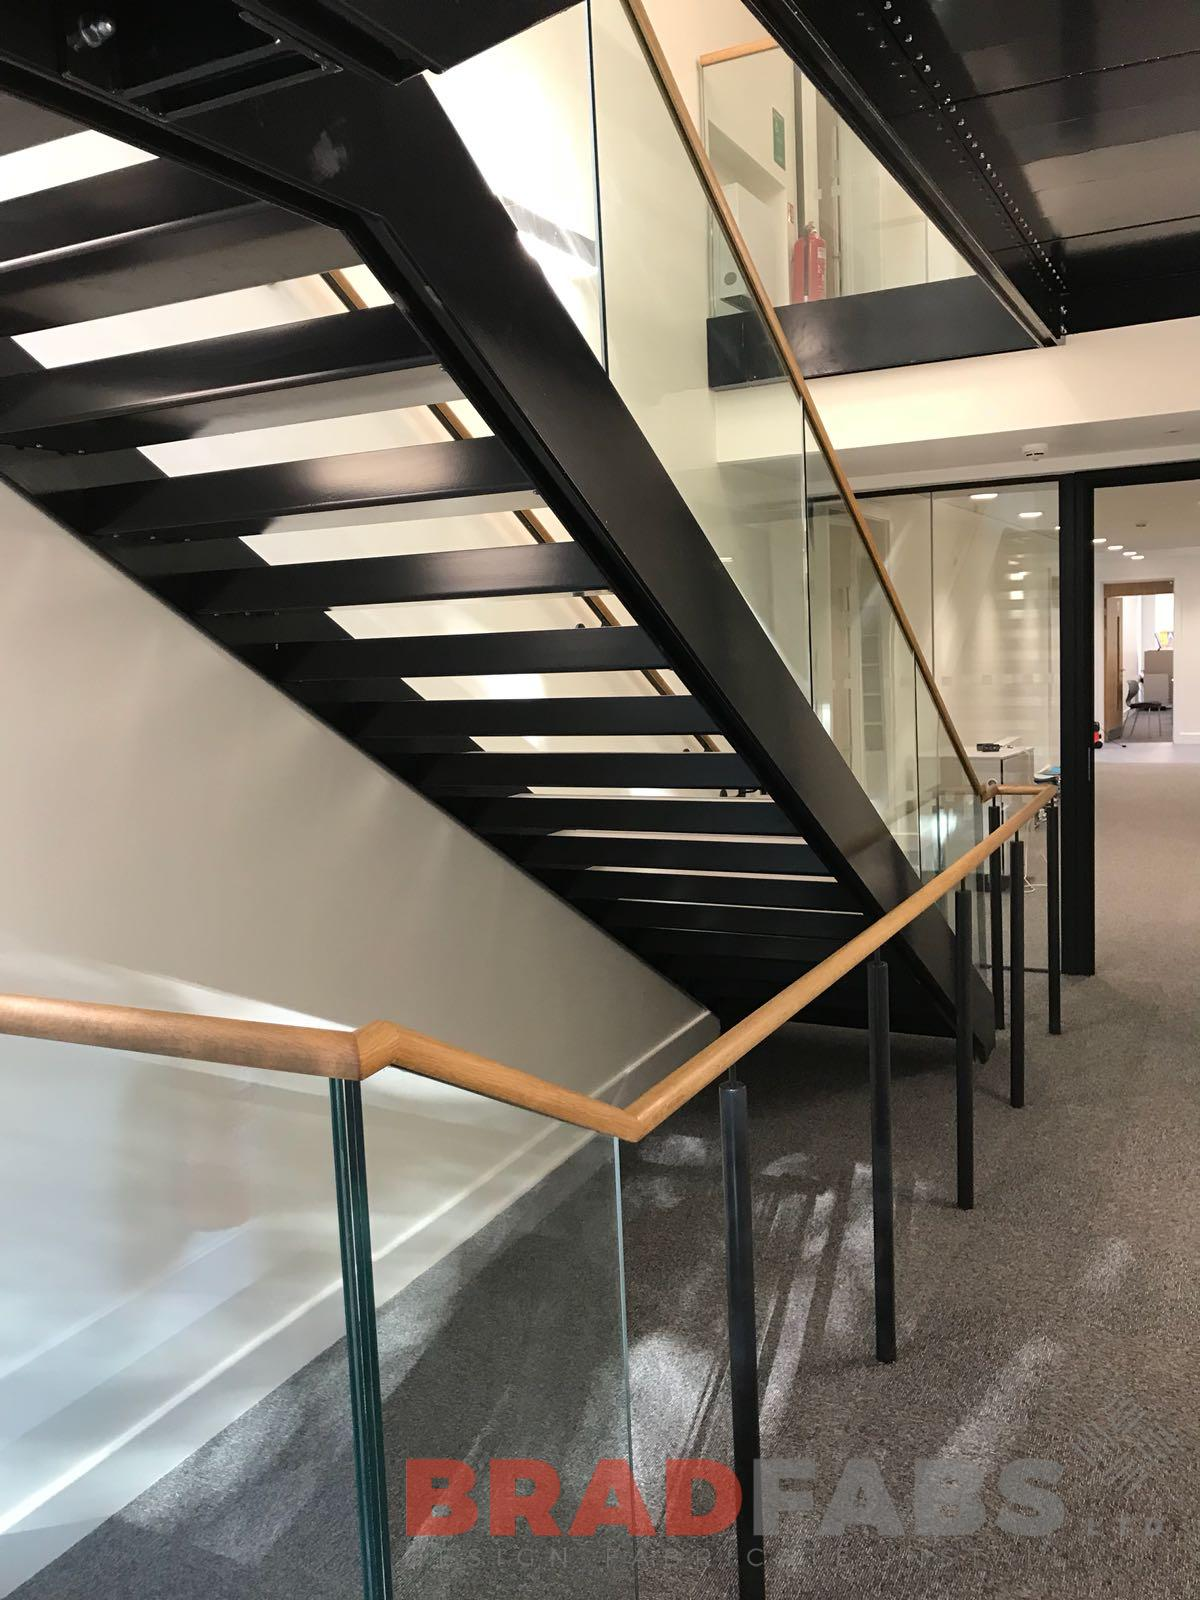 Baustrade handrail school modern installed UK based company Bradfabs LTD